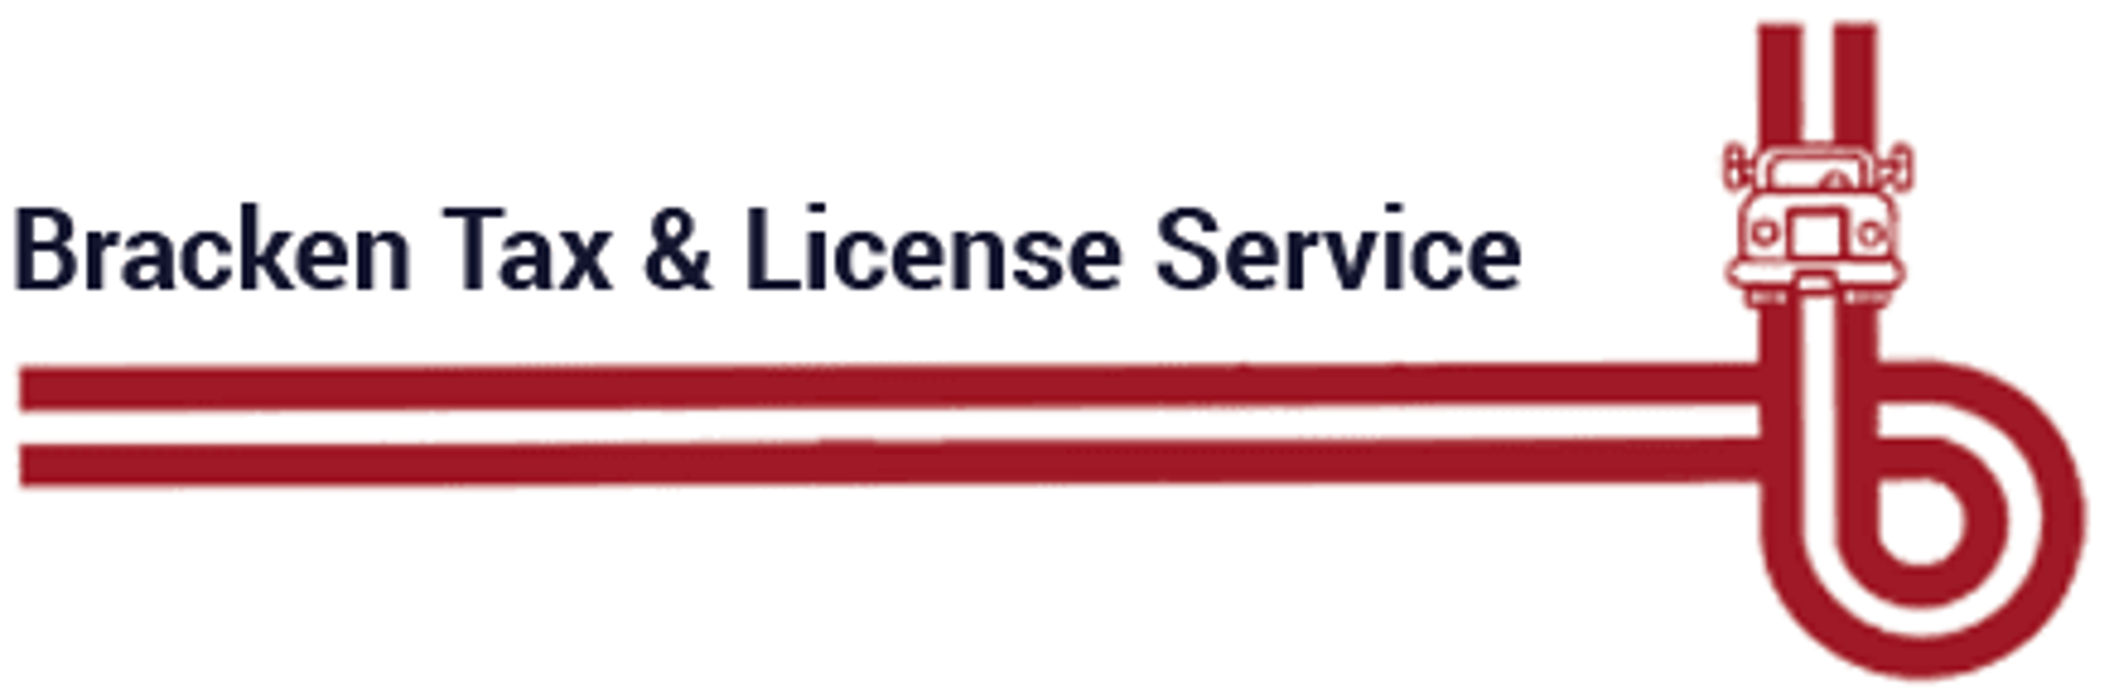 Bracken Tax & License Service - Ontario, CA